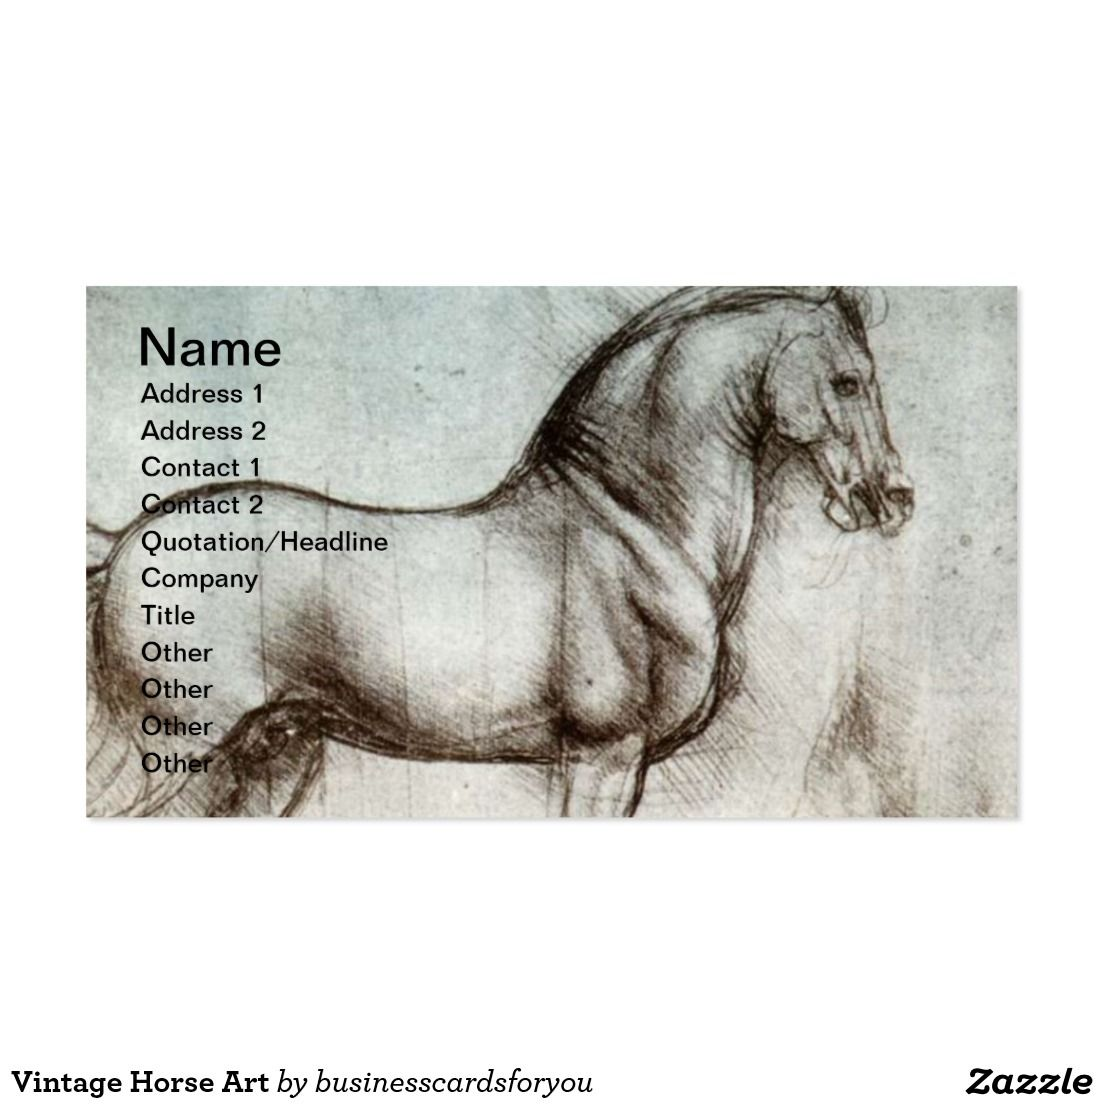 Vintage horse art business card business cards pinterest vintage horse art business card reheart Gallery